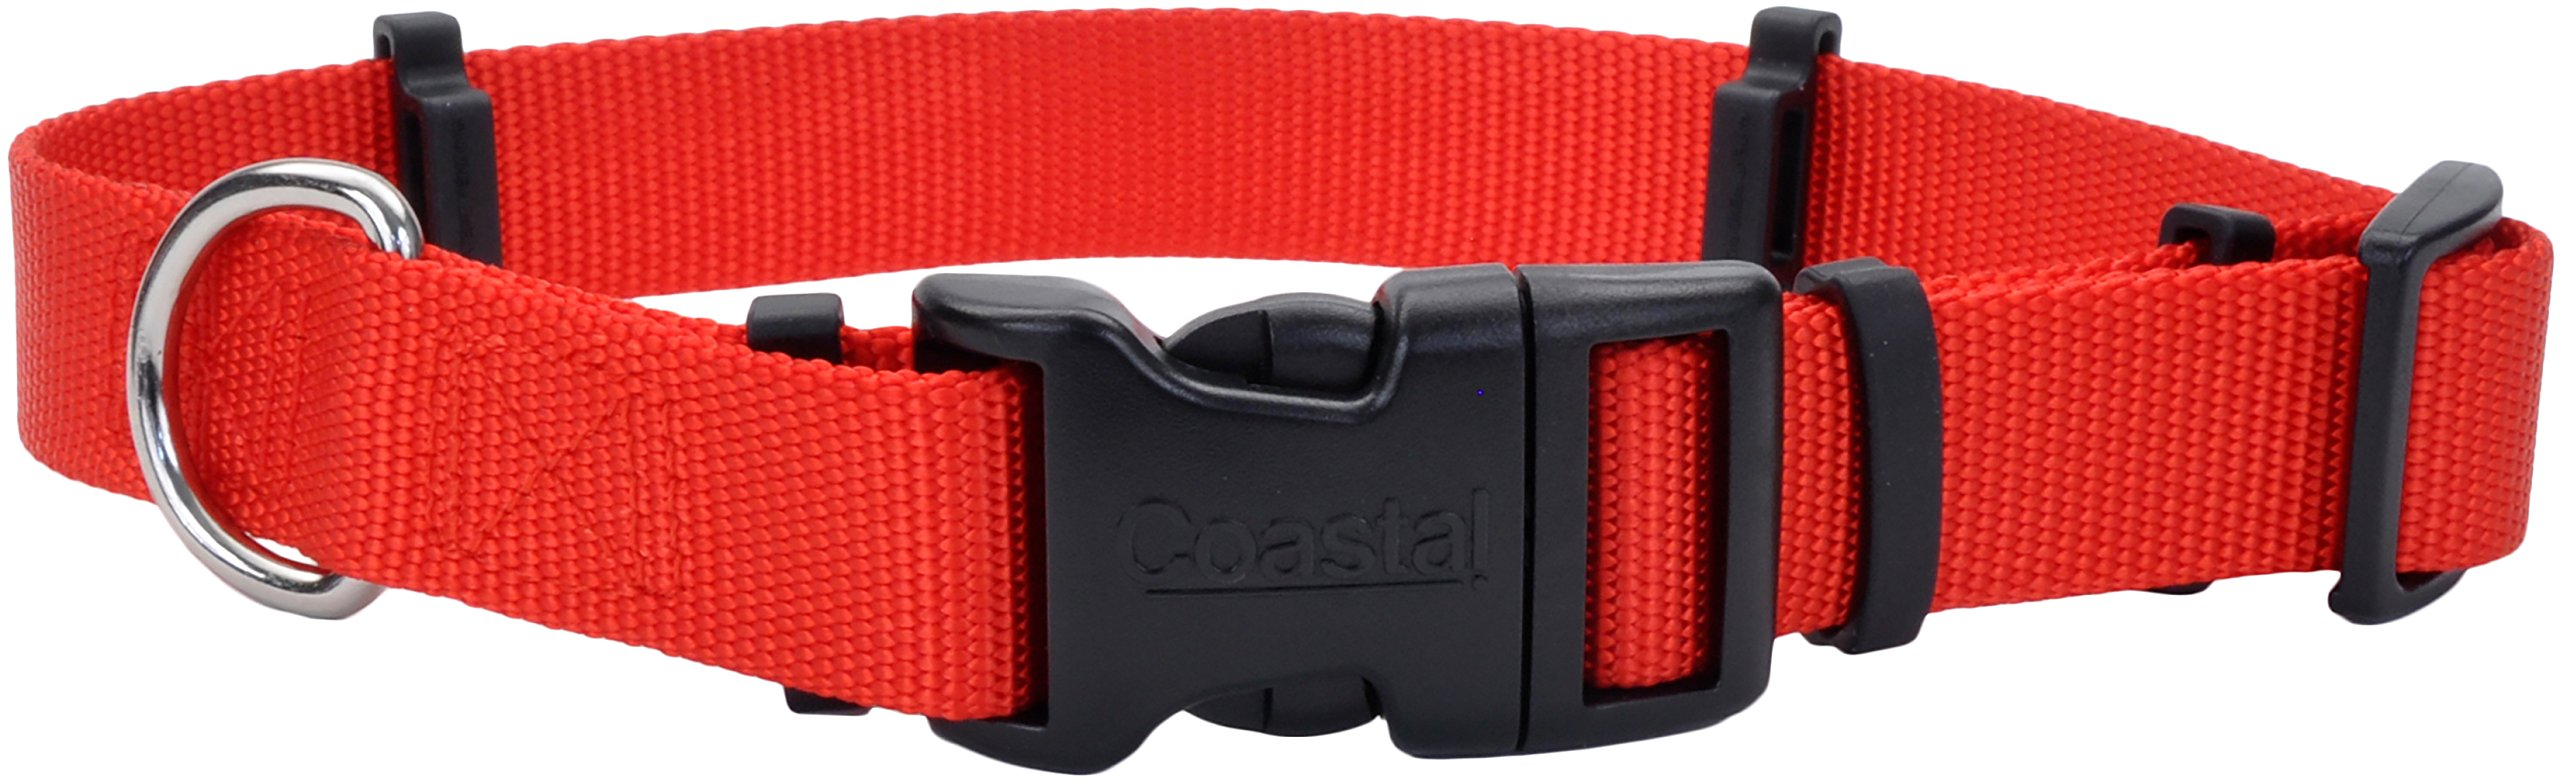 Coastal Pet Products 06192 RED20 Flea Collar Protector, 1'' x 20'' Medium, Red